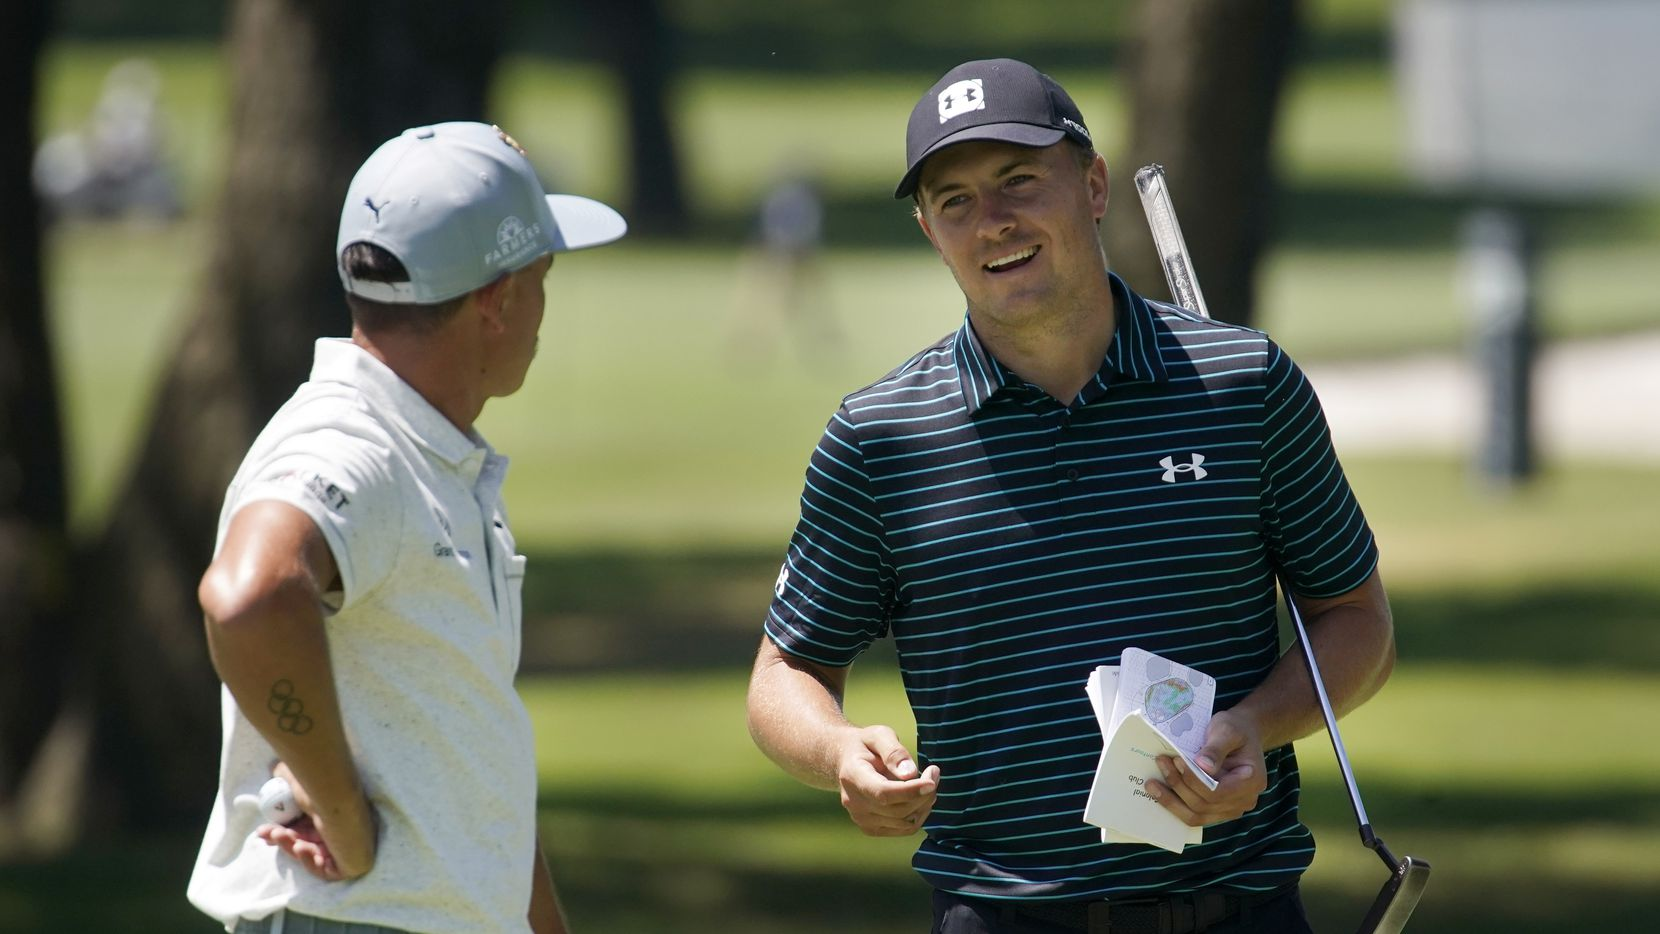 PGA Tour golfer Jordan Spieth visits with playing partner Rickie Fowler after putting on No. 7 during the second round of the Charles Schwab Challenge at the Colonial Country Club in Fort Worth, Friday, June 12, 2020.  The Challenge is the first tour event since the COVID-19 pandemic began. (Tom Fox/The Dallas Morning News)